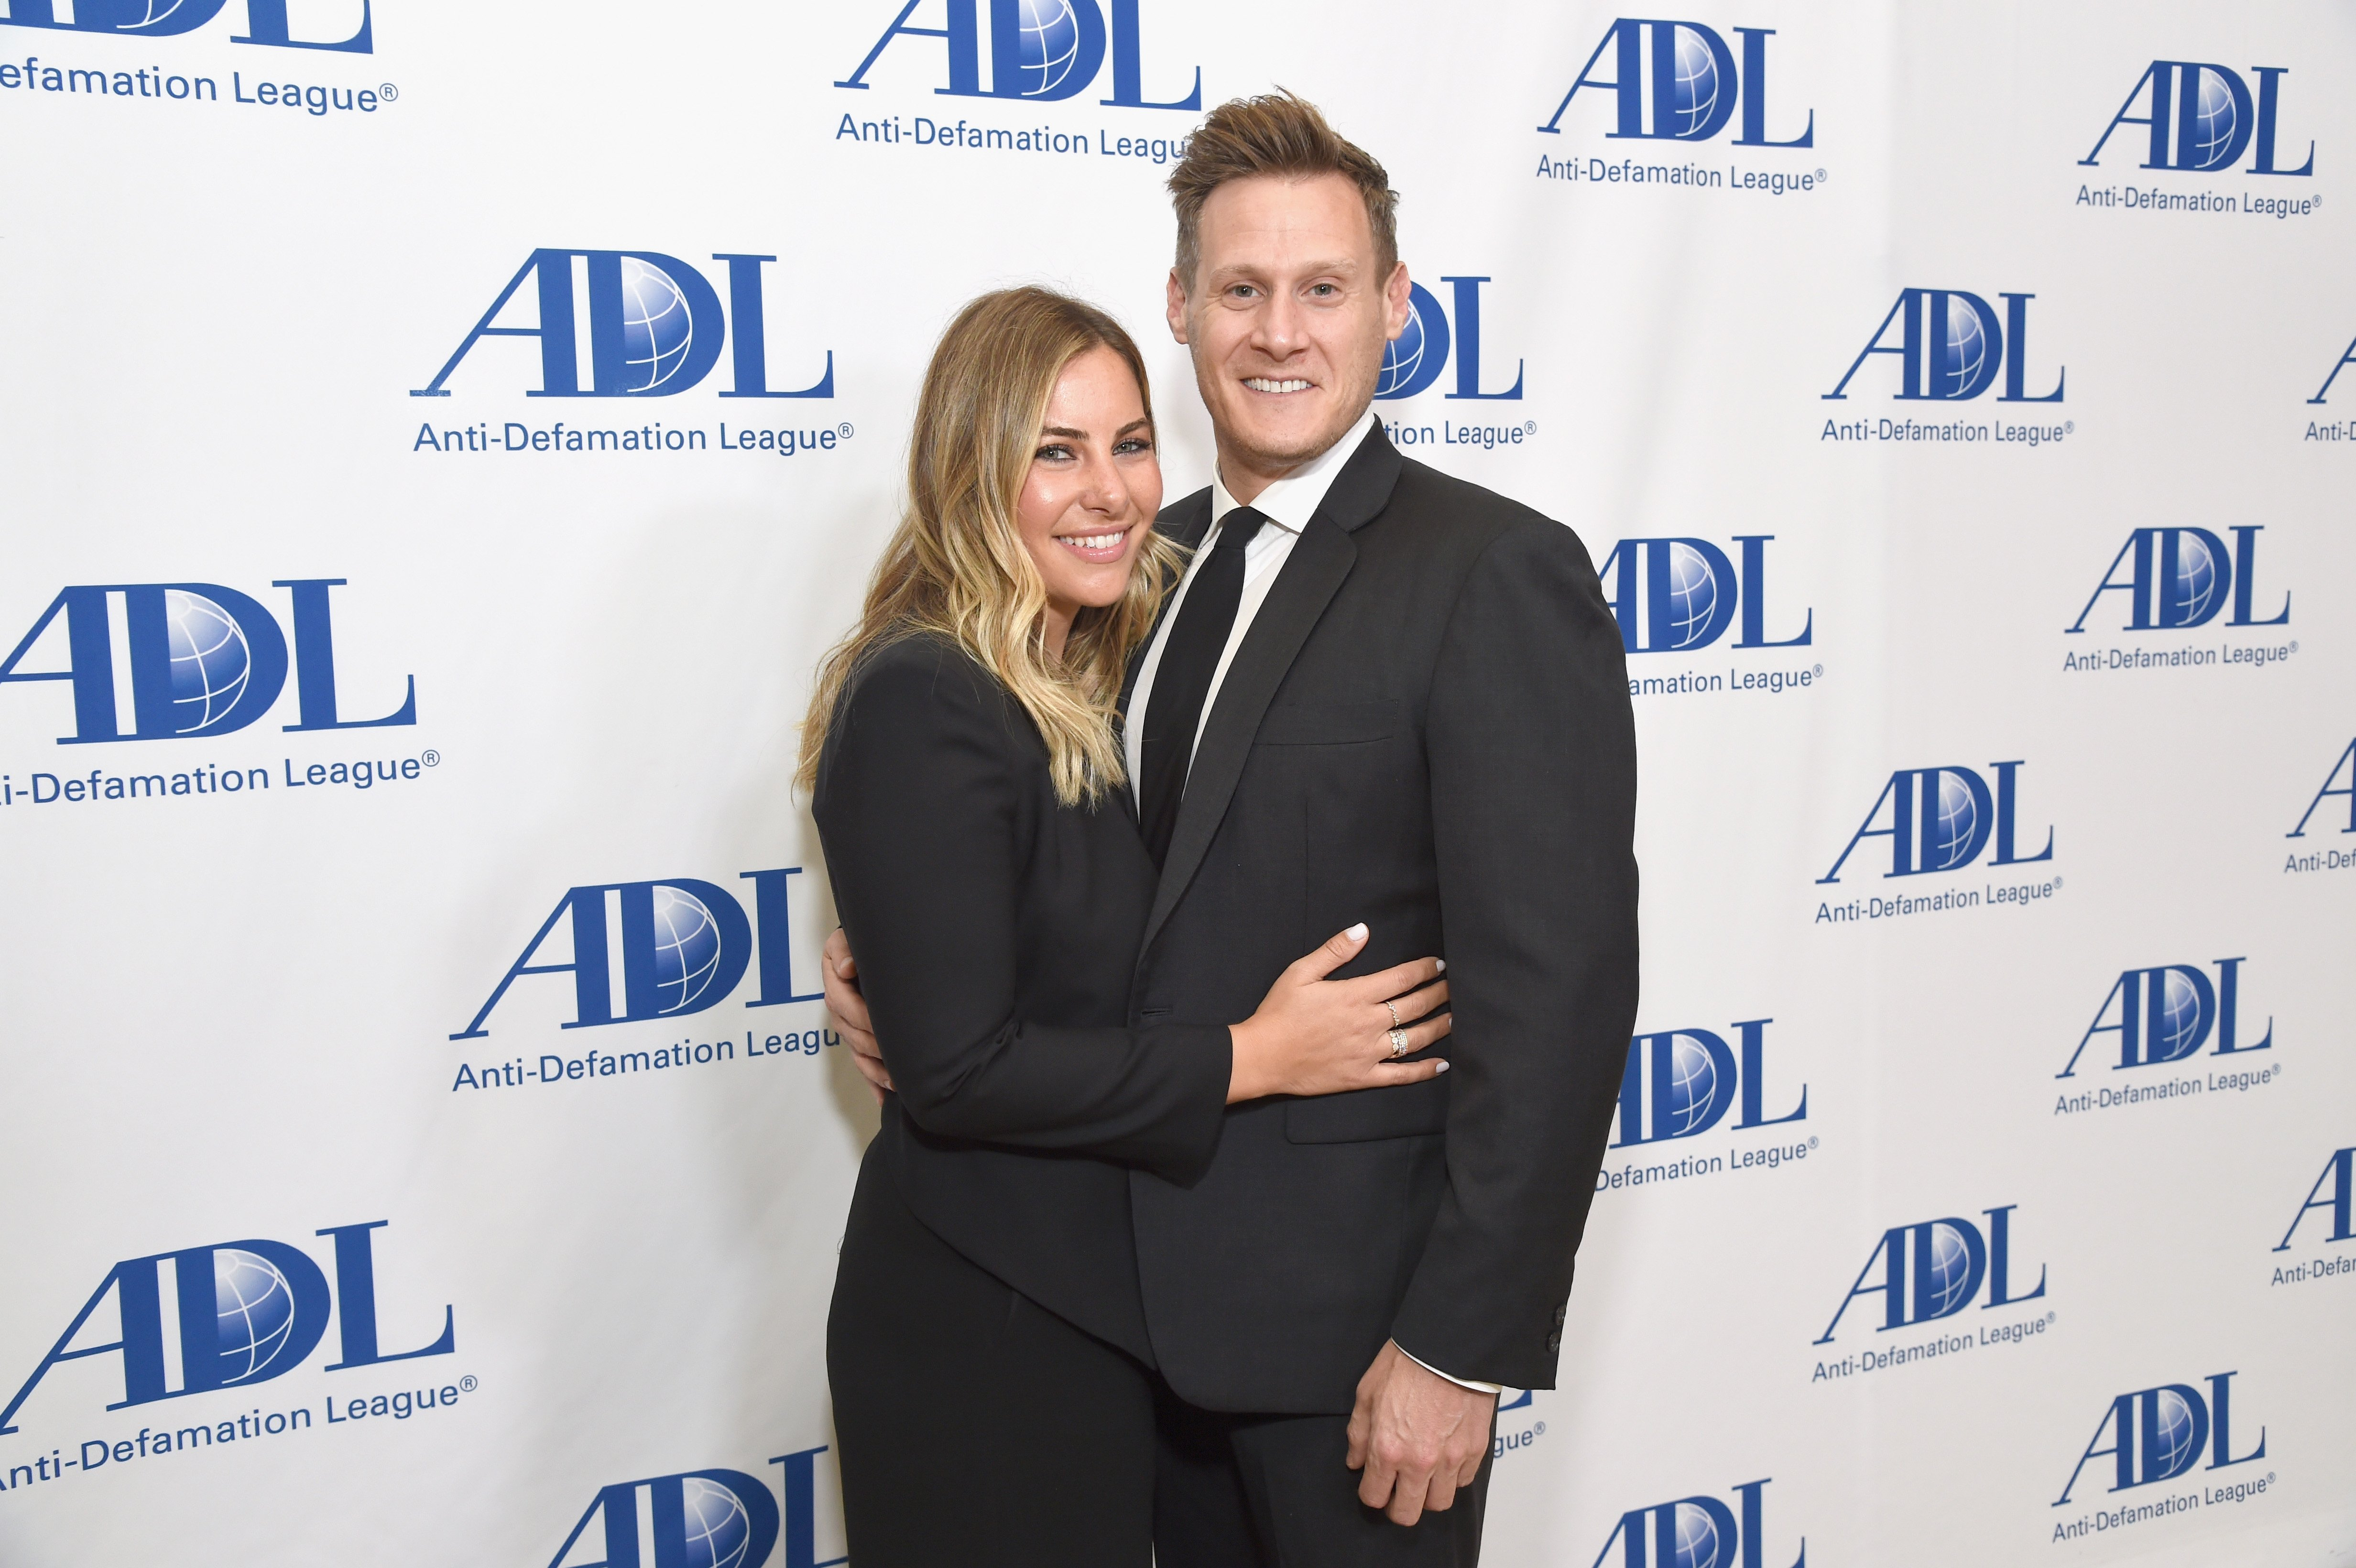 Tracey Kurland and Trevor Engelson attend the Anti-Defamation League Entertainment Industry Dinner on April 17, 2018, in Beverly Hills, California. | Source: Getty Images.